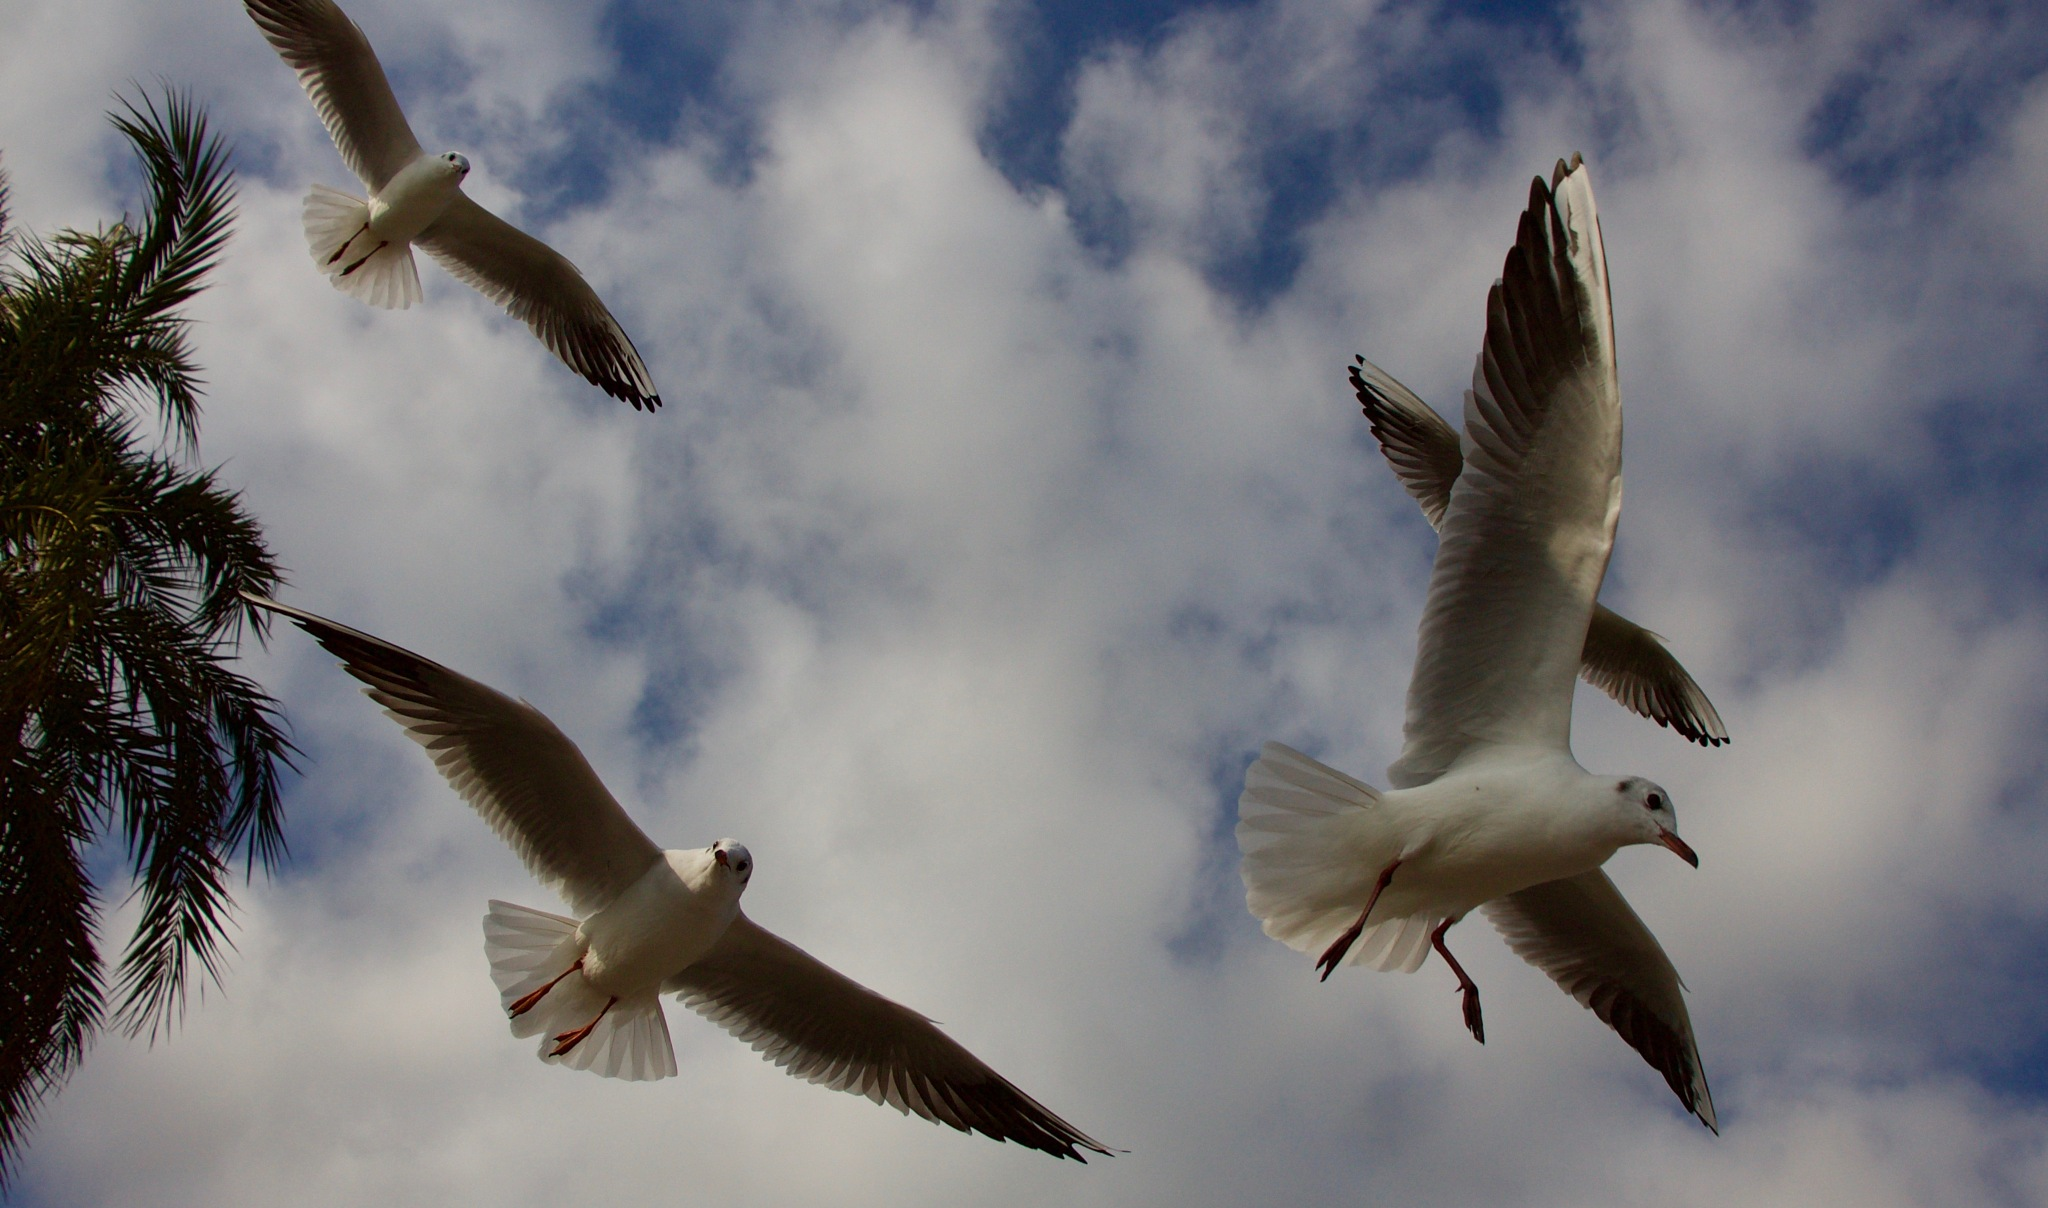 A ballet of Seagulls by Sandra Dubout